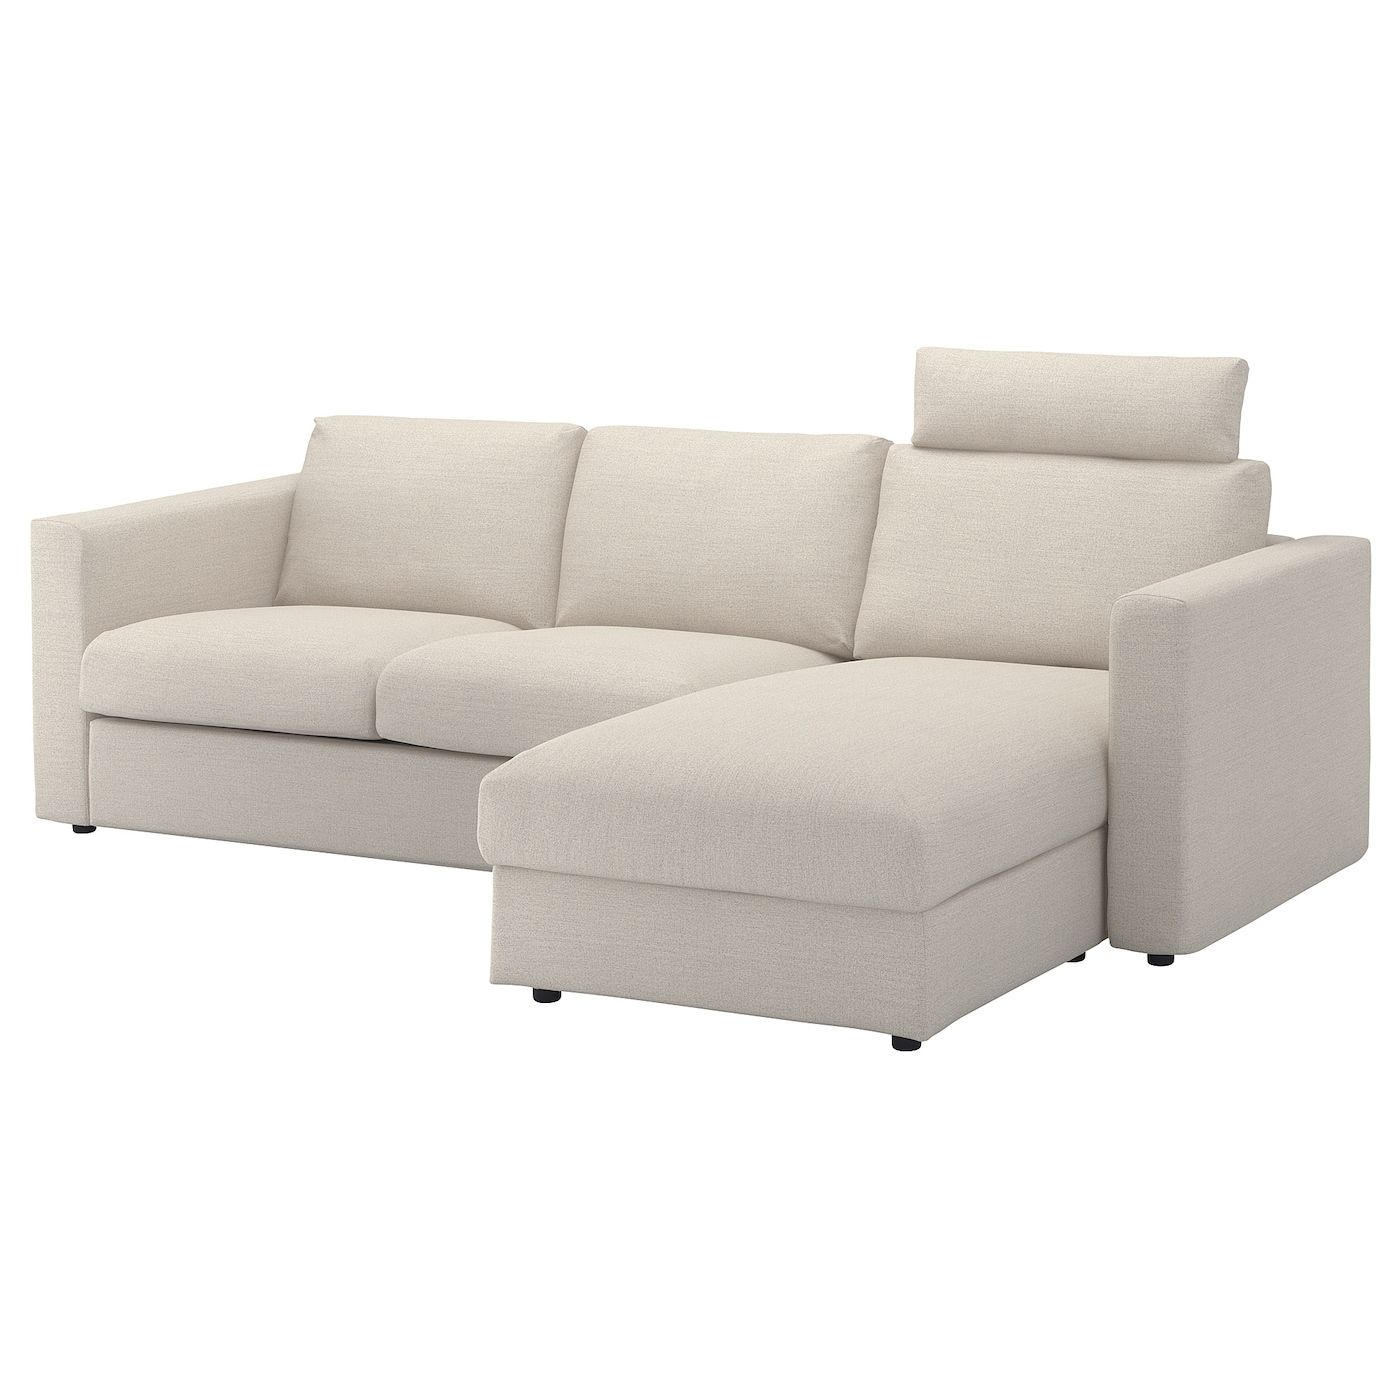 Vimle Sofa With Chaise Headrest